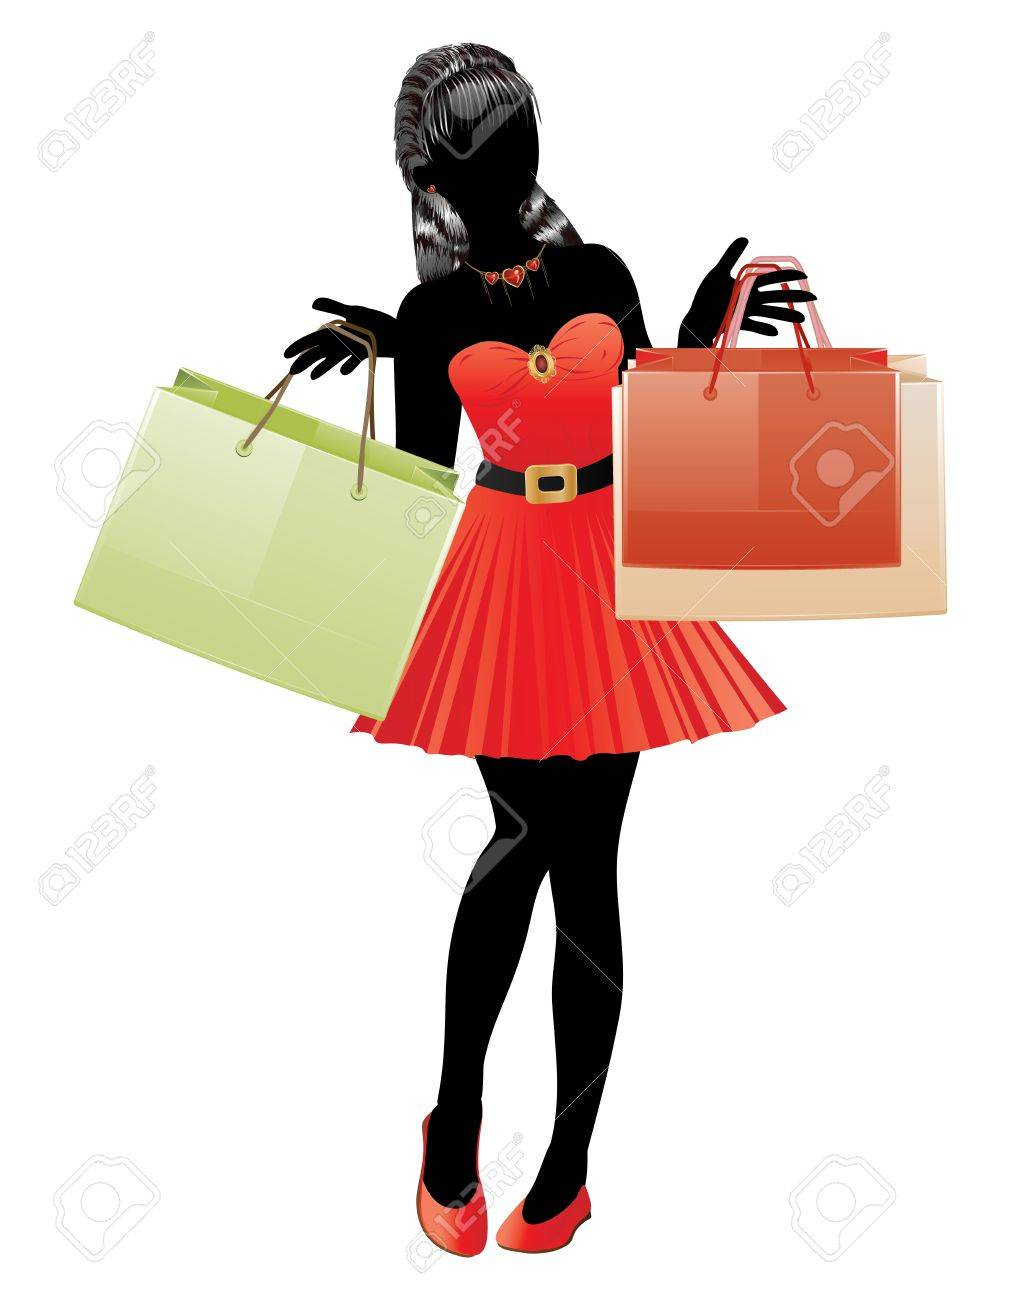 1021x1300 Silhouette Of A Fashion Shopping Girl In Red Dress With Shopping